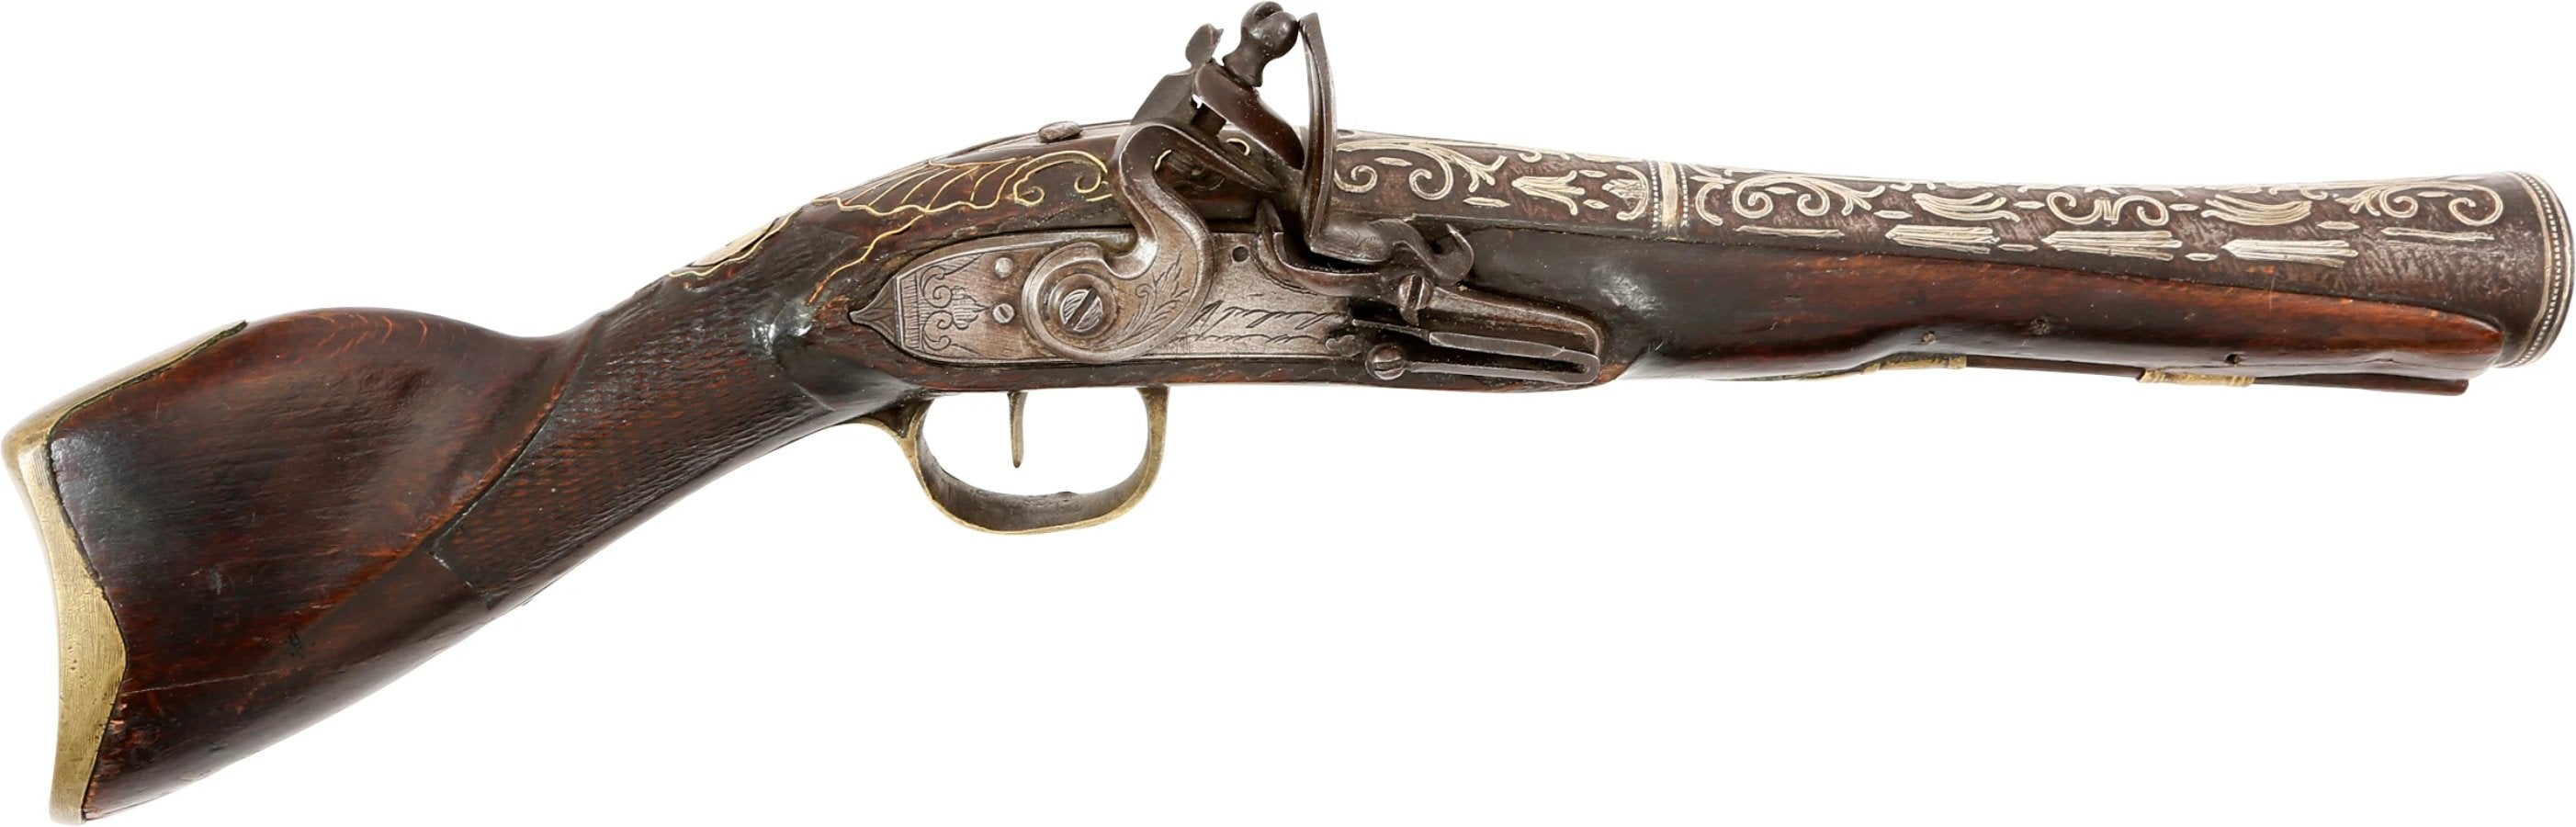 OTTOMAN TURKISH FLINTLOCK BLUNDERBUSS - Fagan Arms